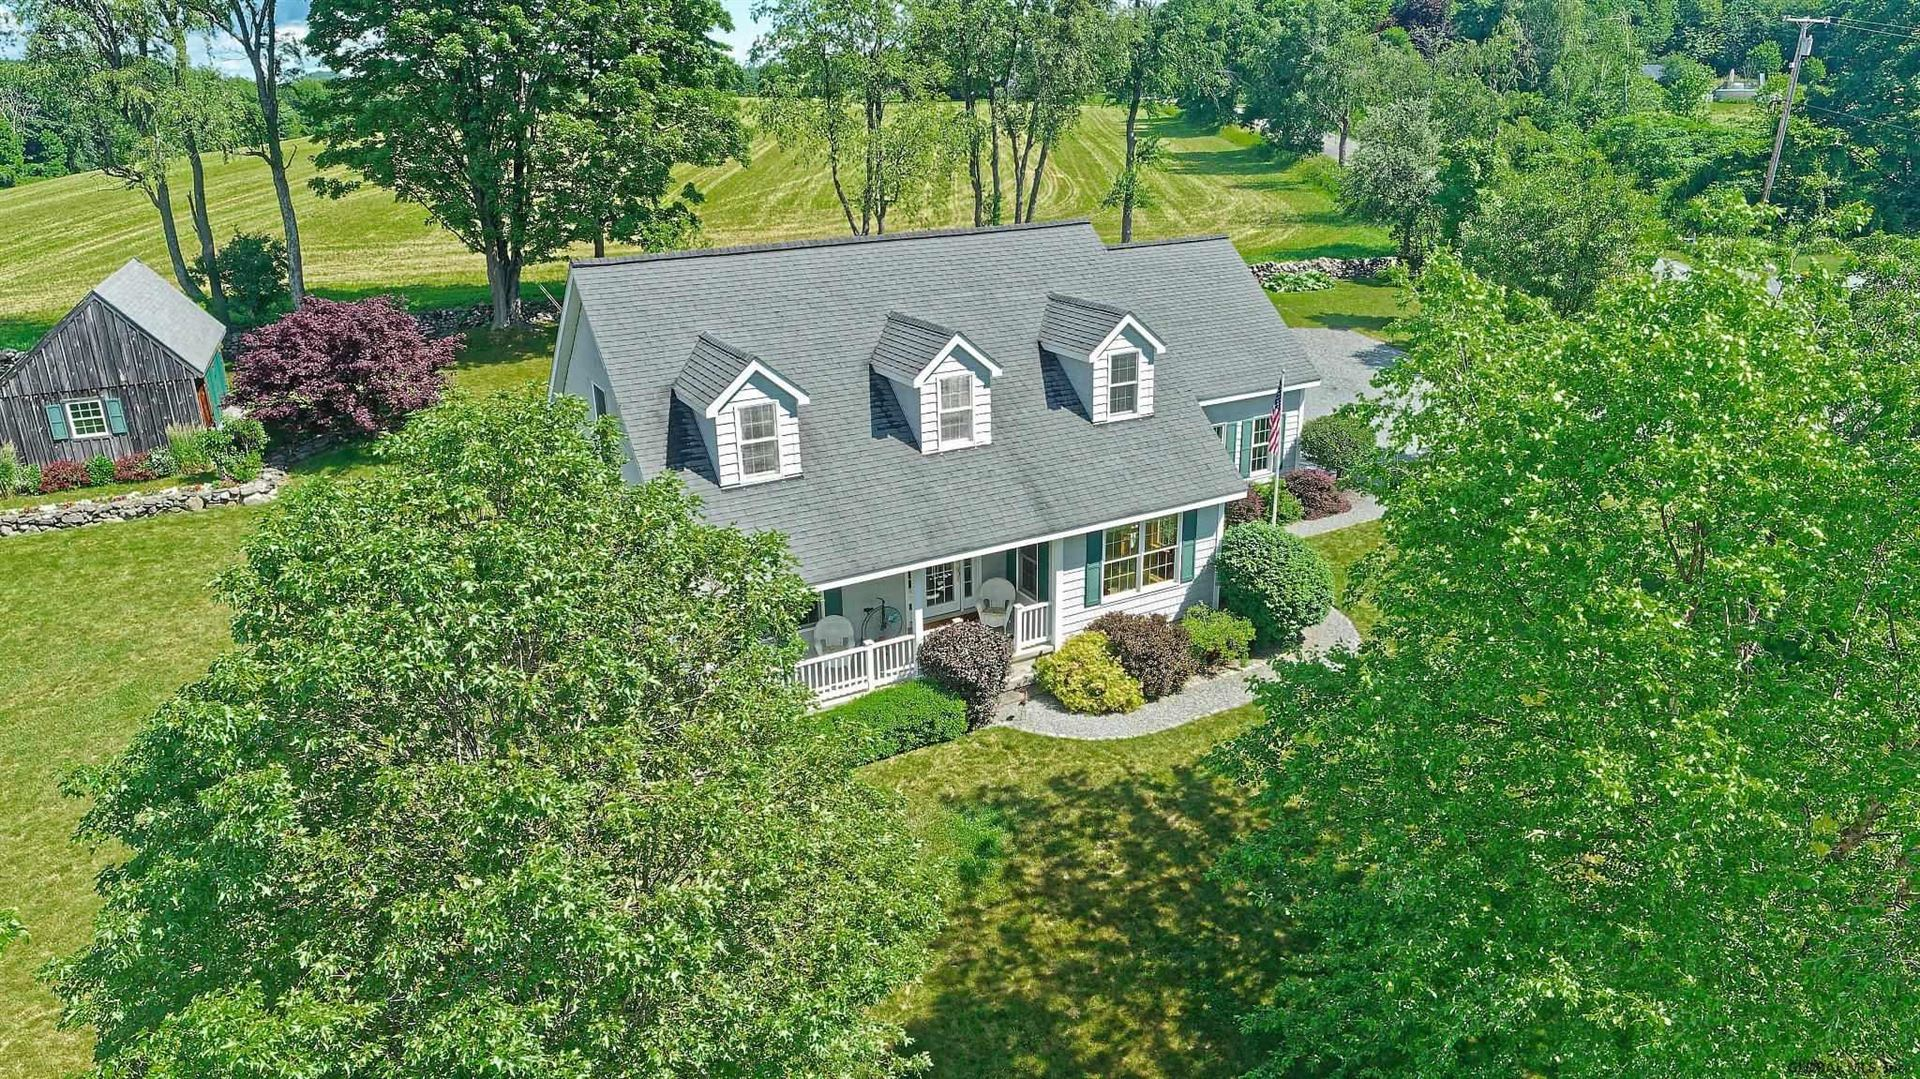 557 COUNTY ROUTE 52, Greenwich, NY 12834 - MLS#: 202121923